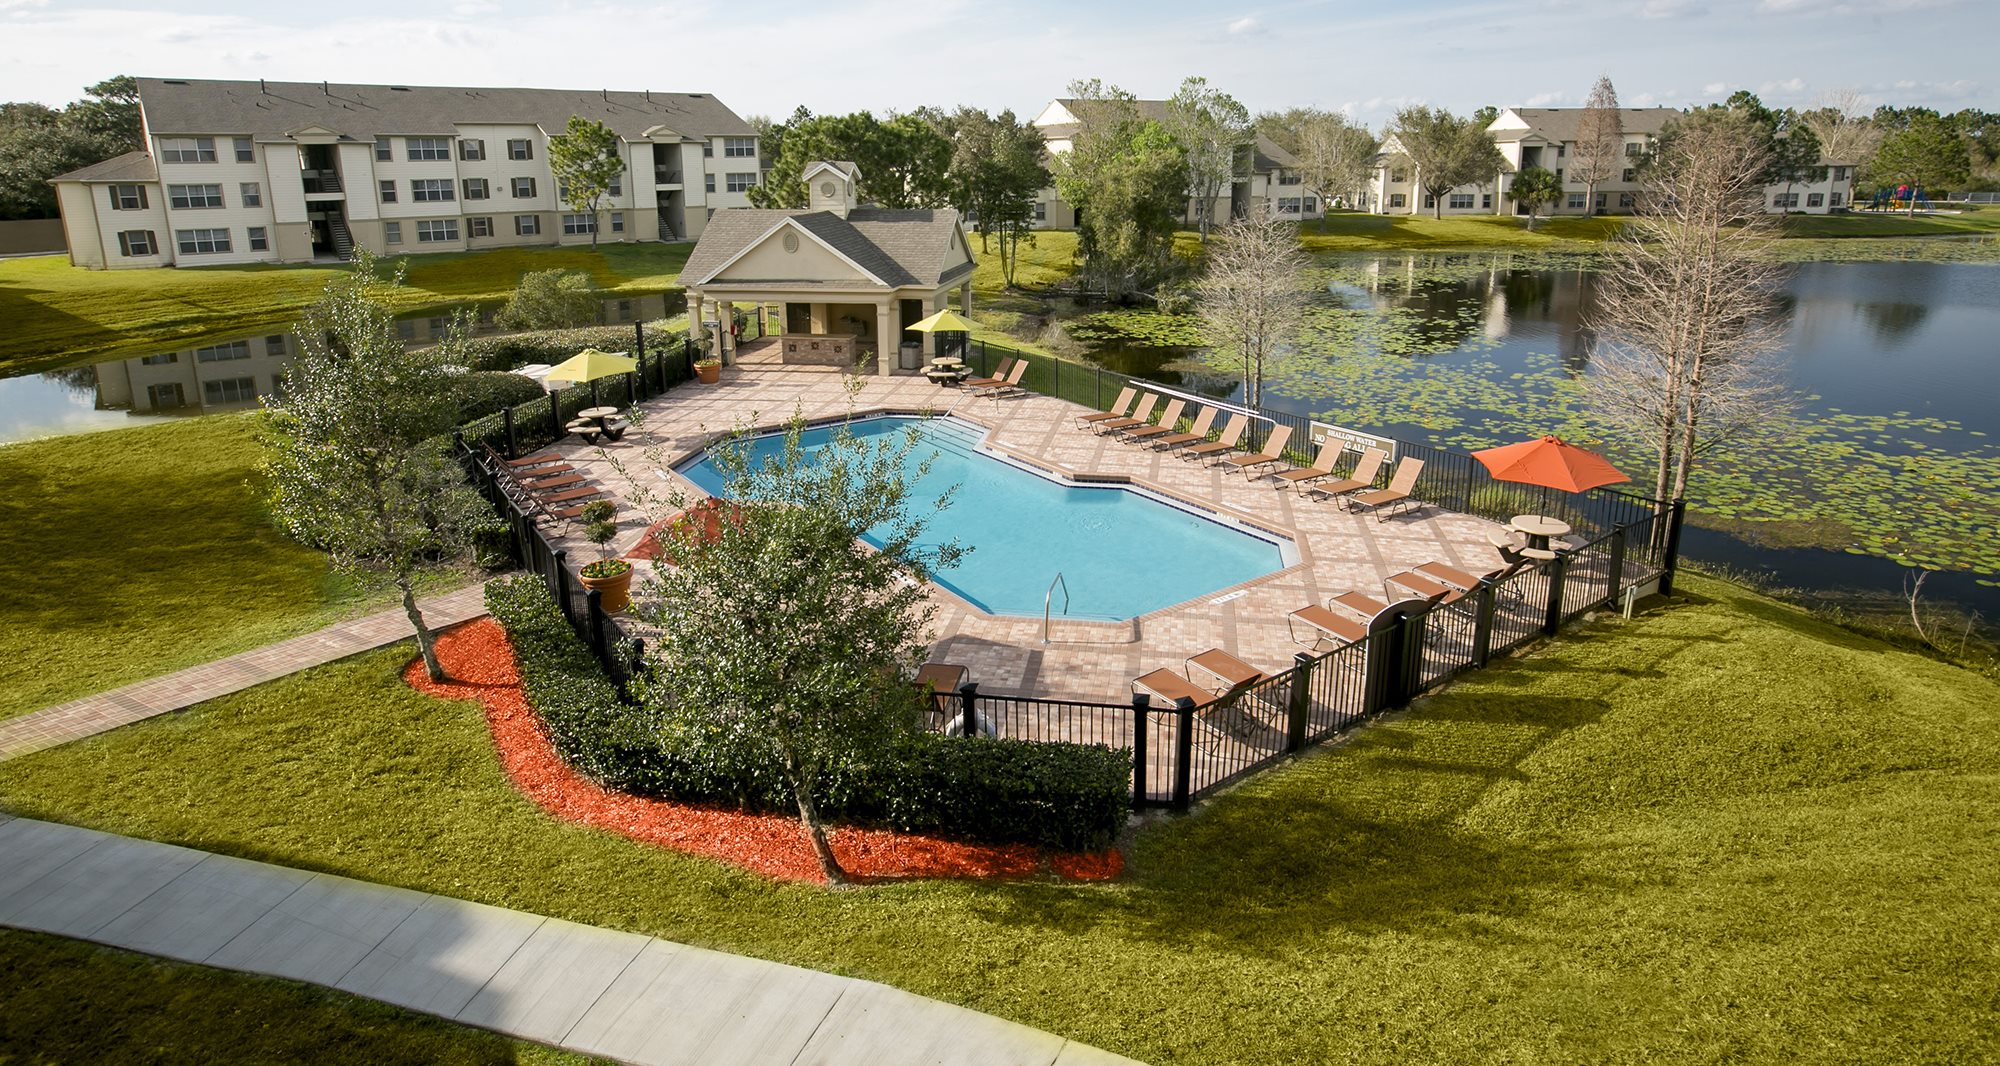 Trails at Loma for rent in Oviedo, FL. Make this community your new home or visit other Concord Rents communities at ConcordRents.com. Pool